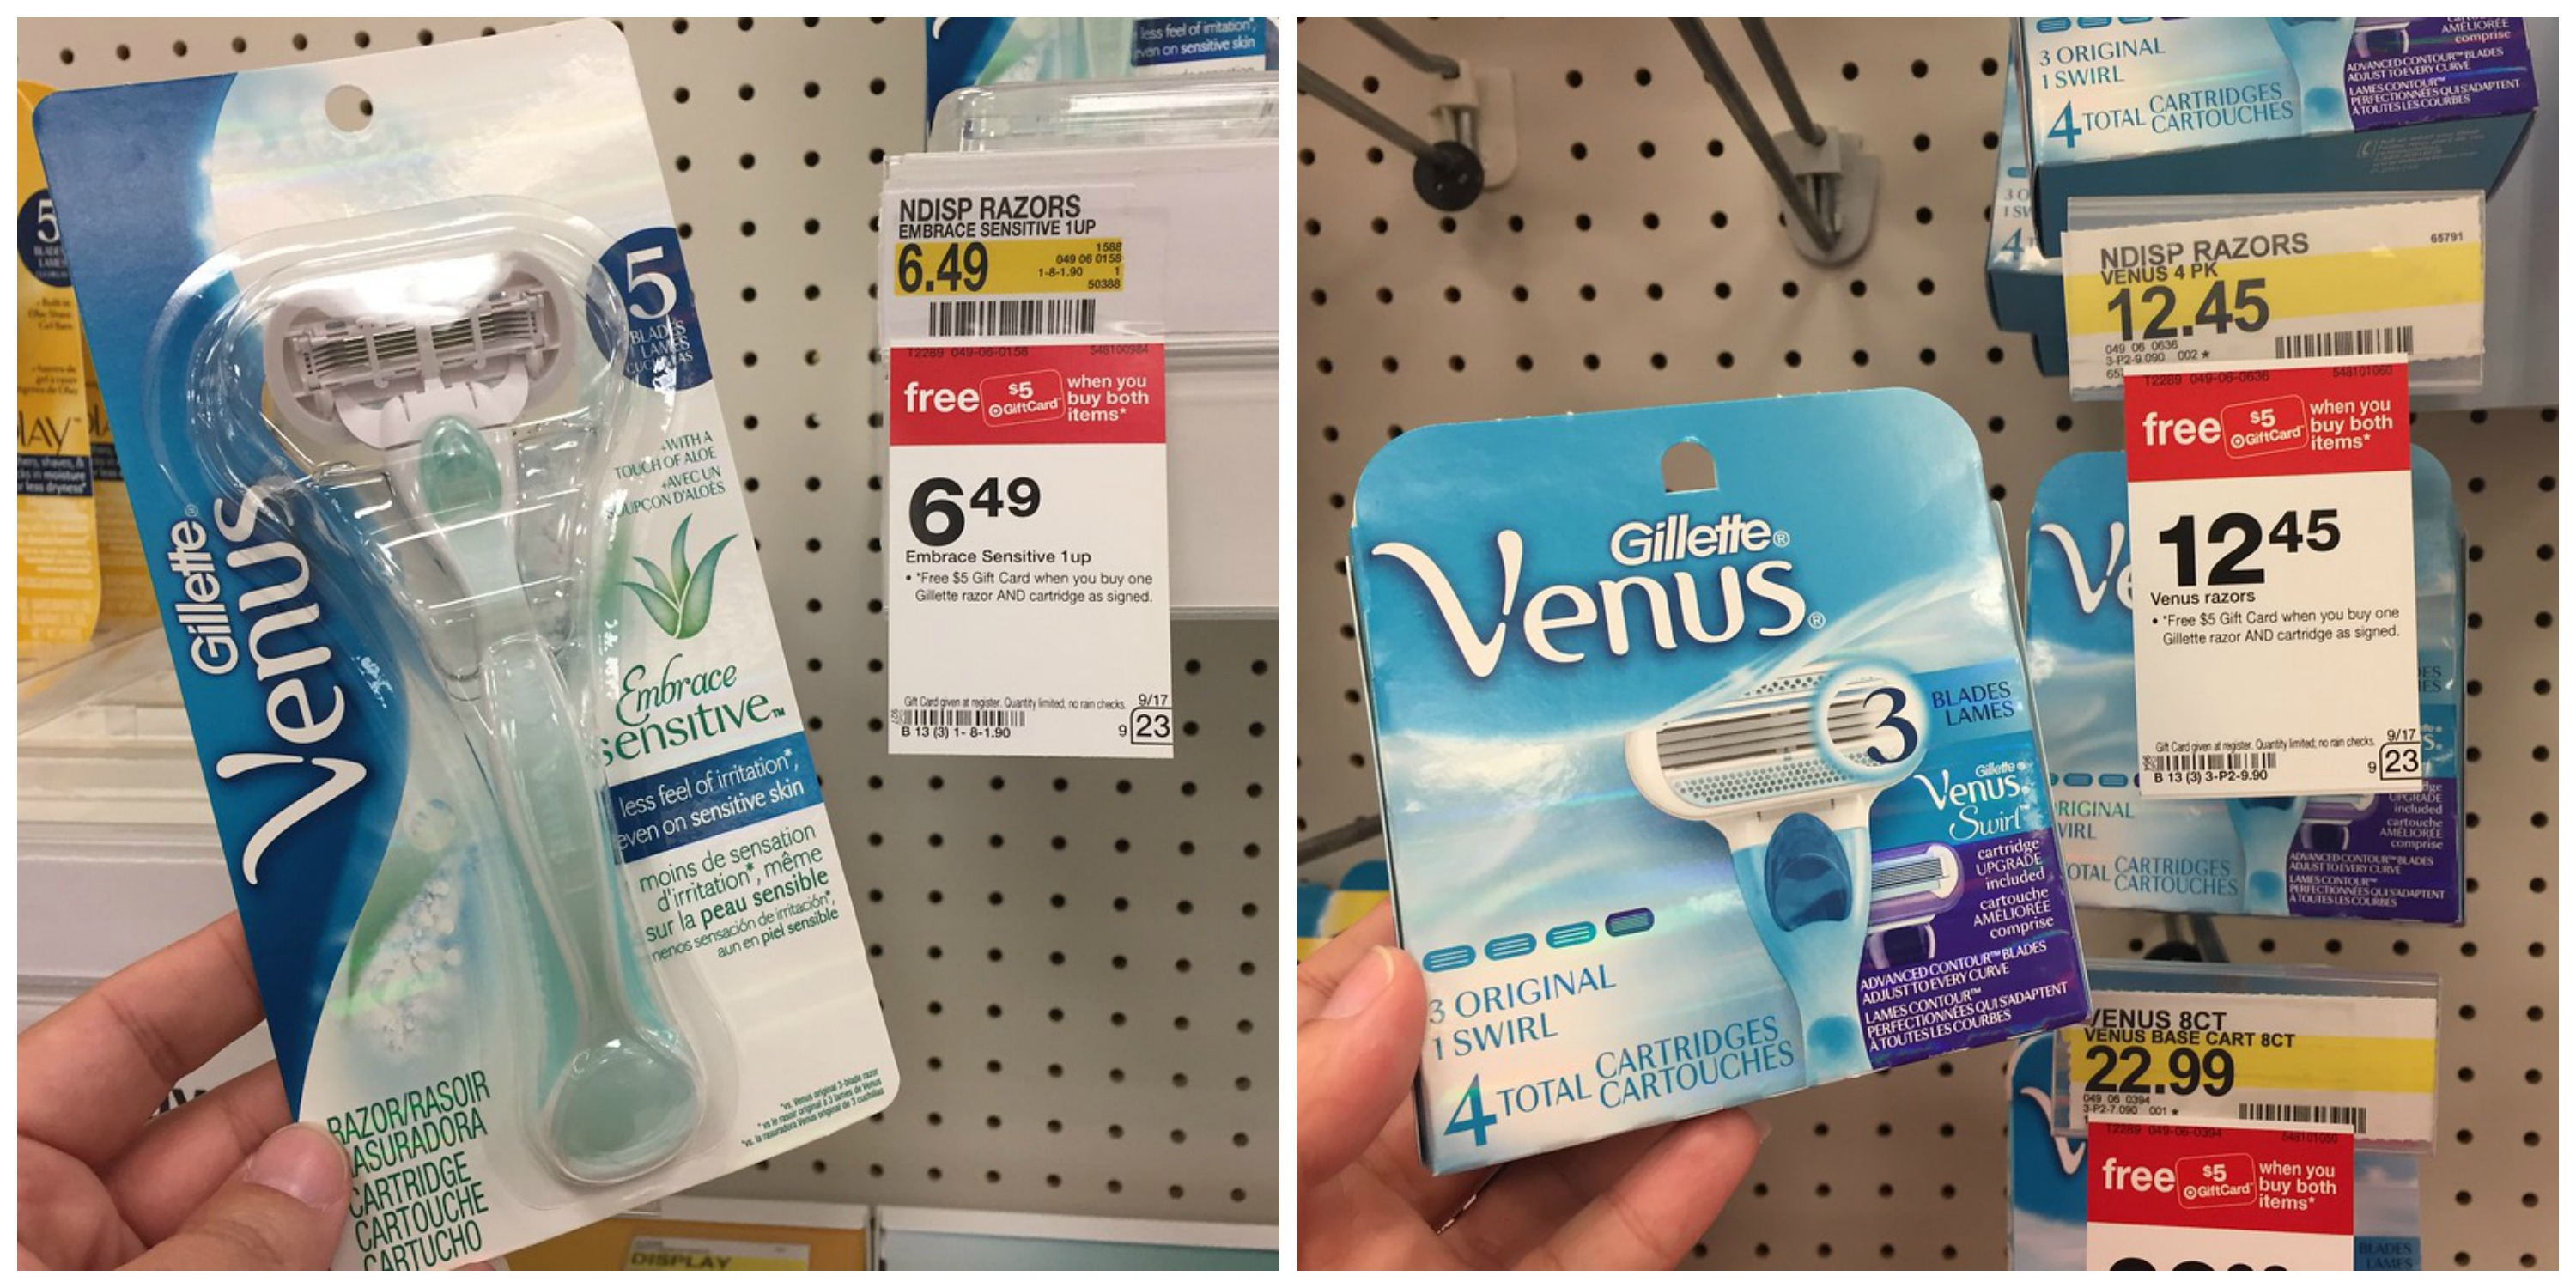 photograph regarding Venus Razor Coupons Printable referred to as Concentration: Gillette and Venus Razors Refills As Very low As $2.62